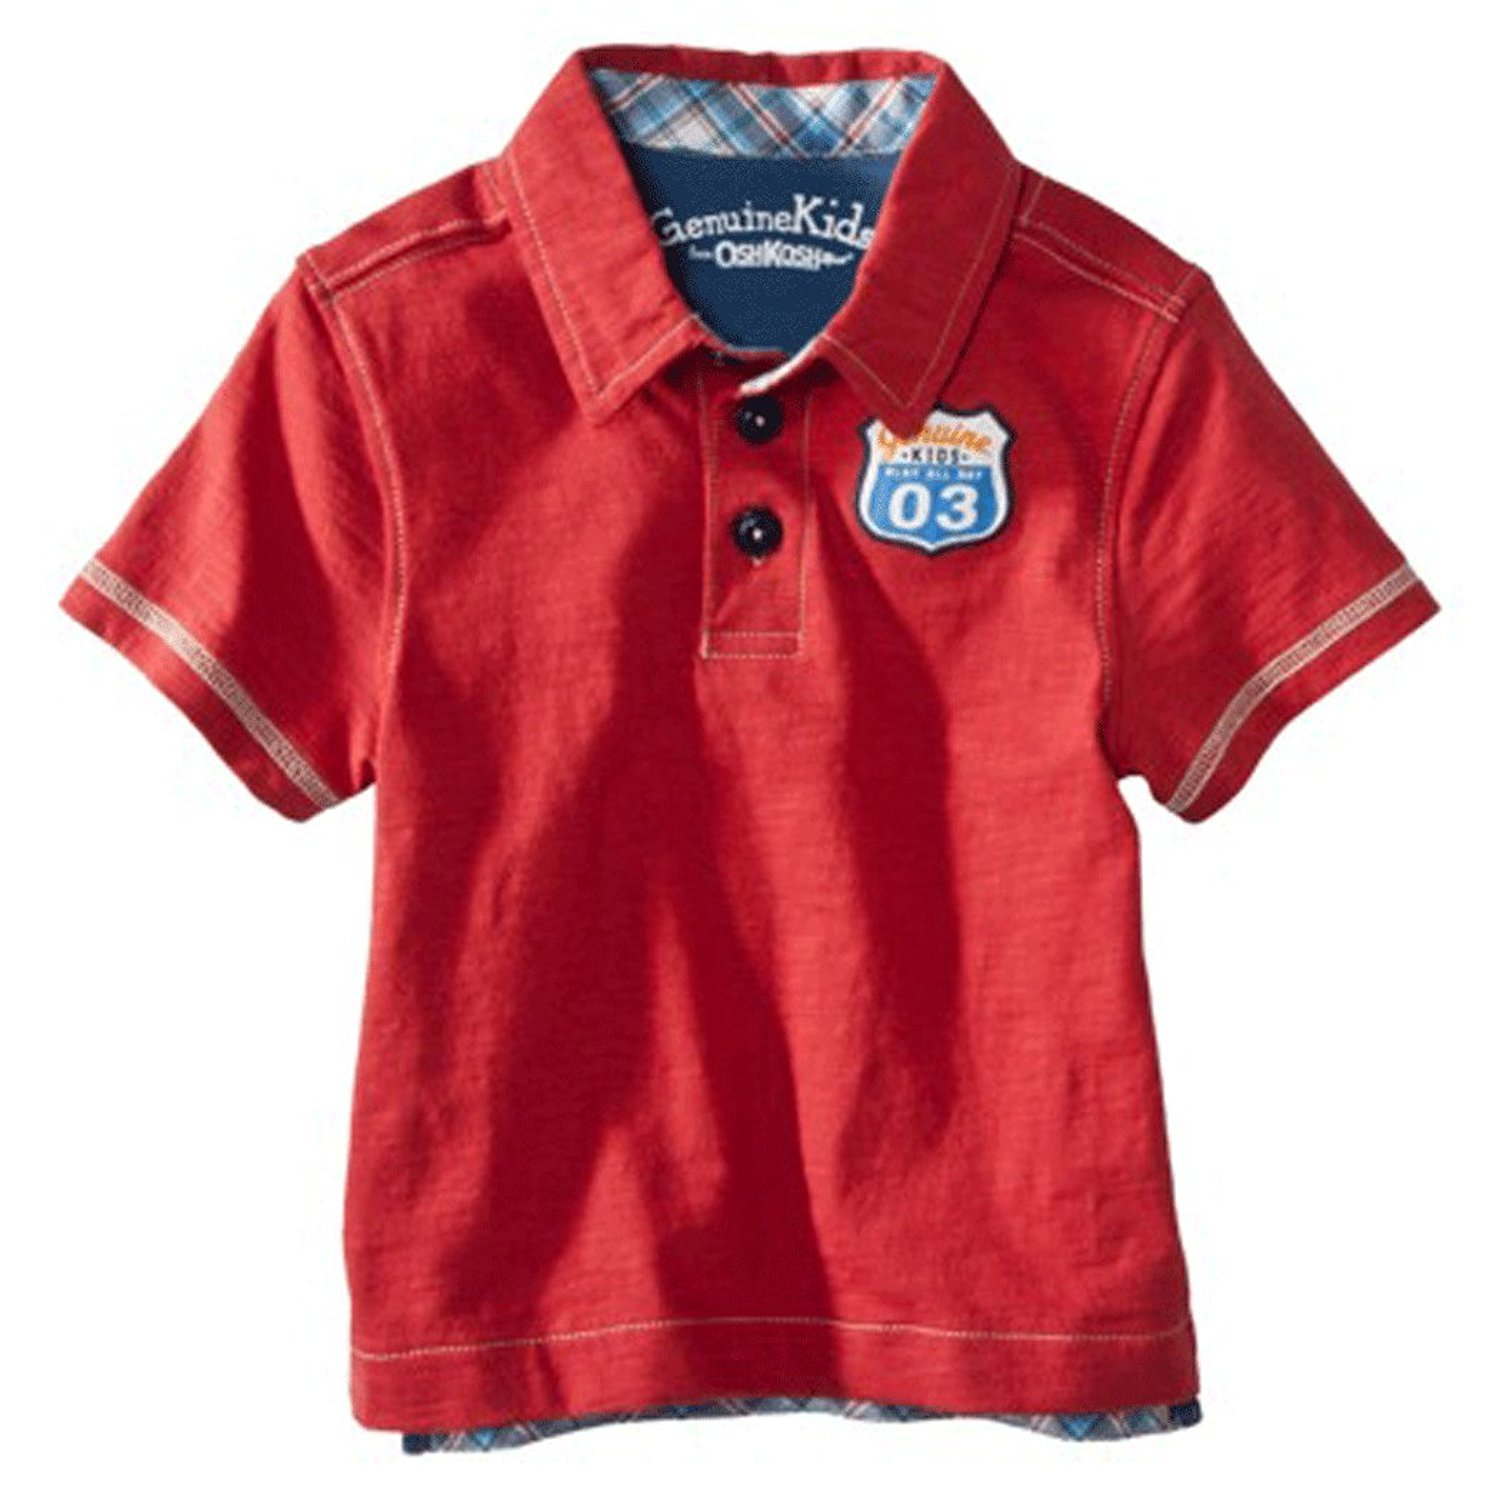 a9920240 Get Quotations · Genuine Kids Made By Oshkosh Infant/Toddler Boys Short  Sleeve Polo Shirt Red